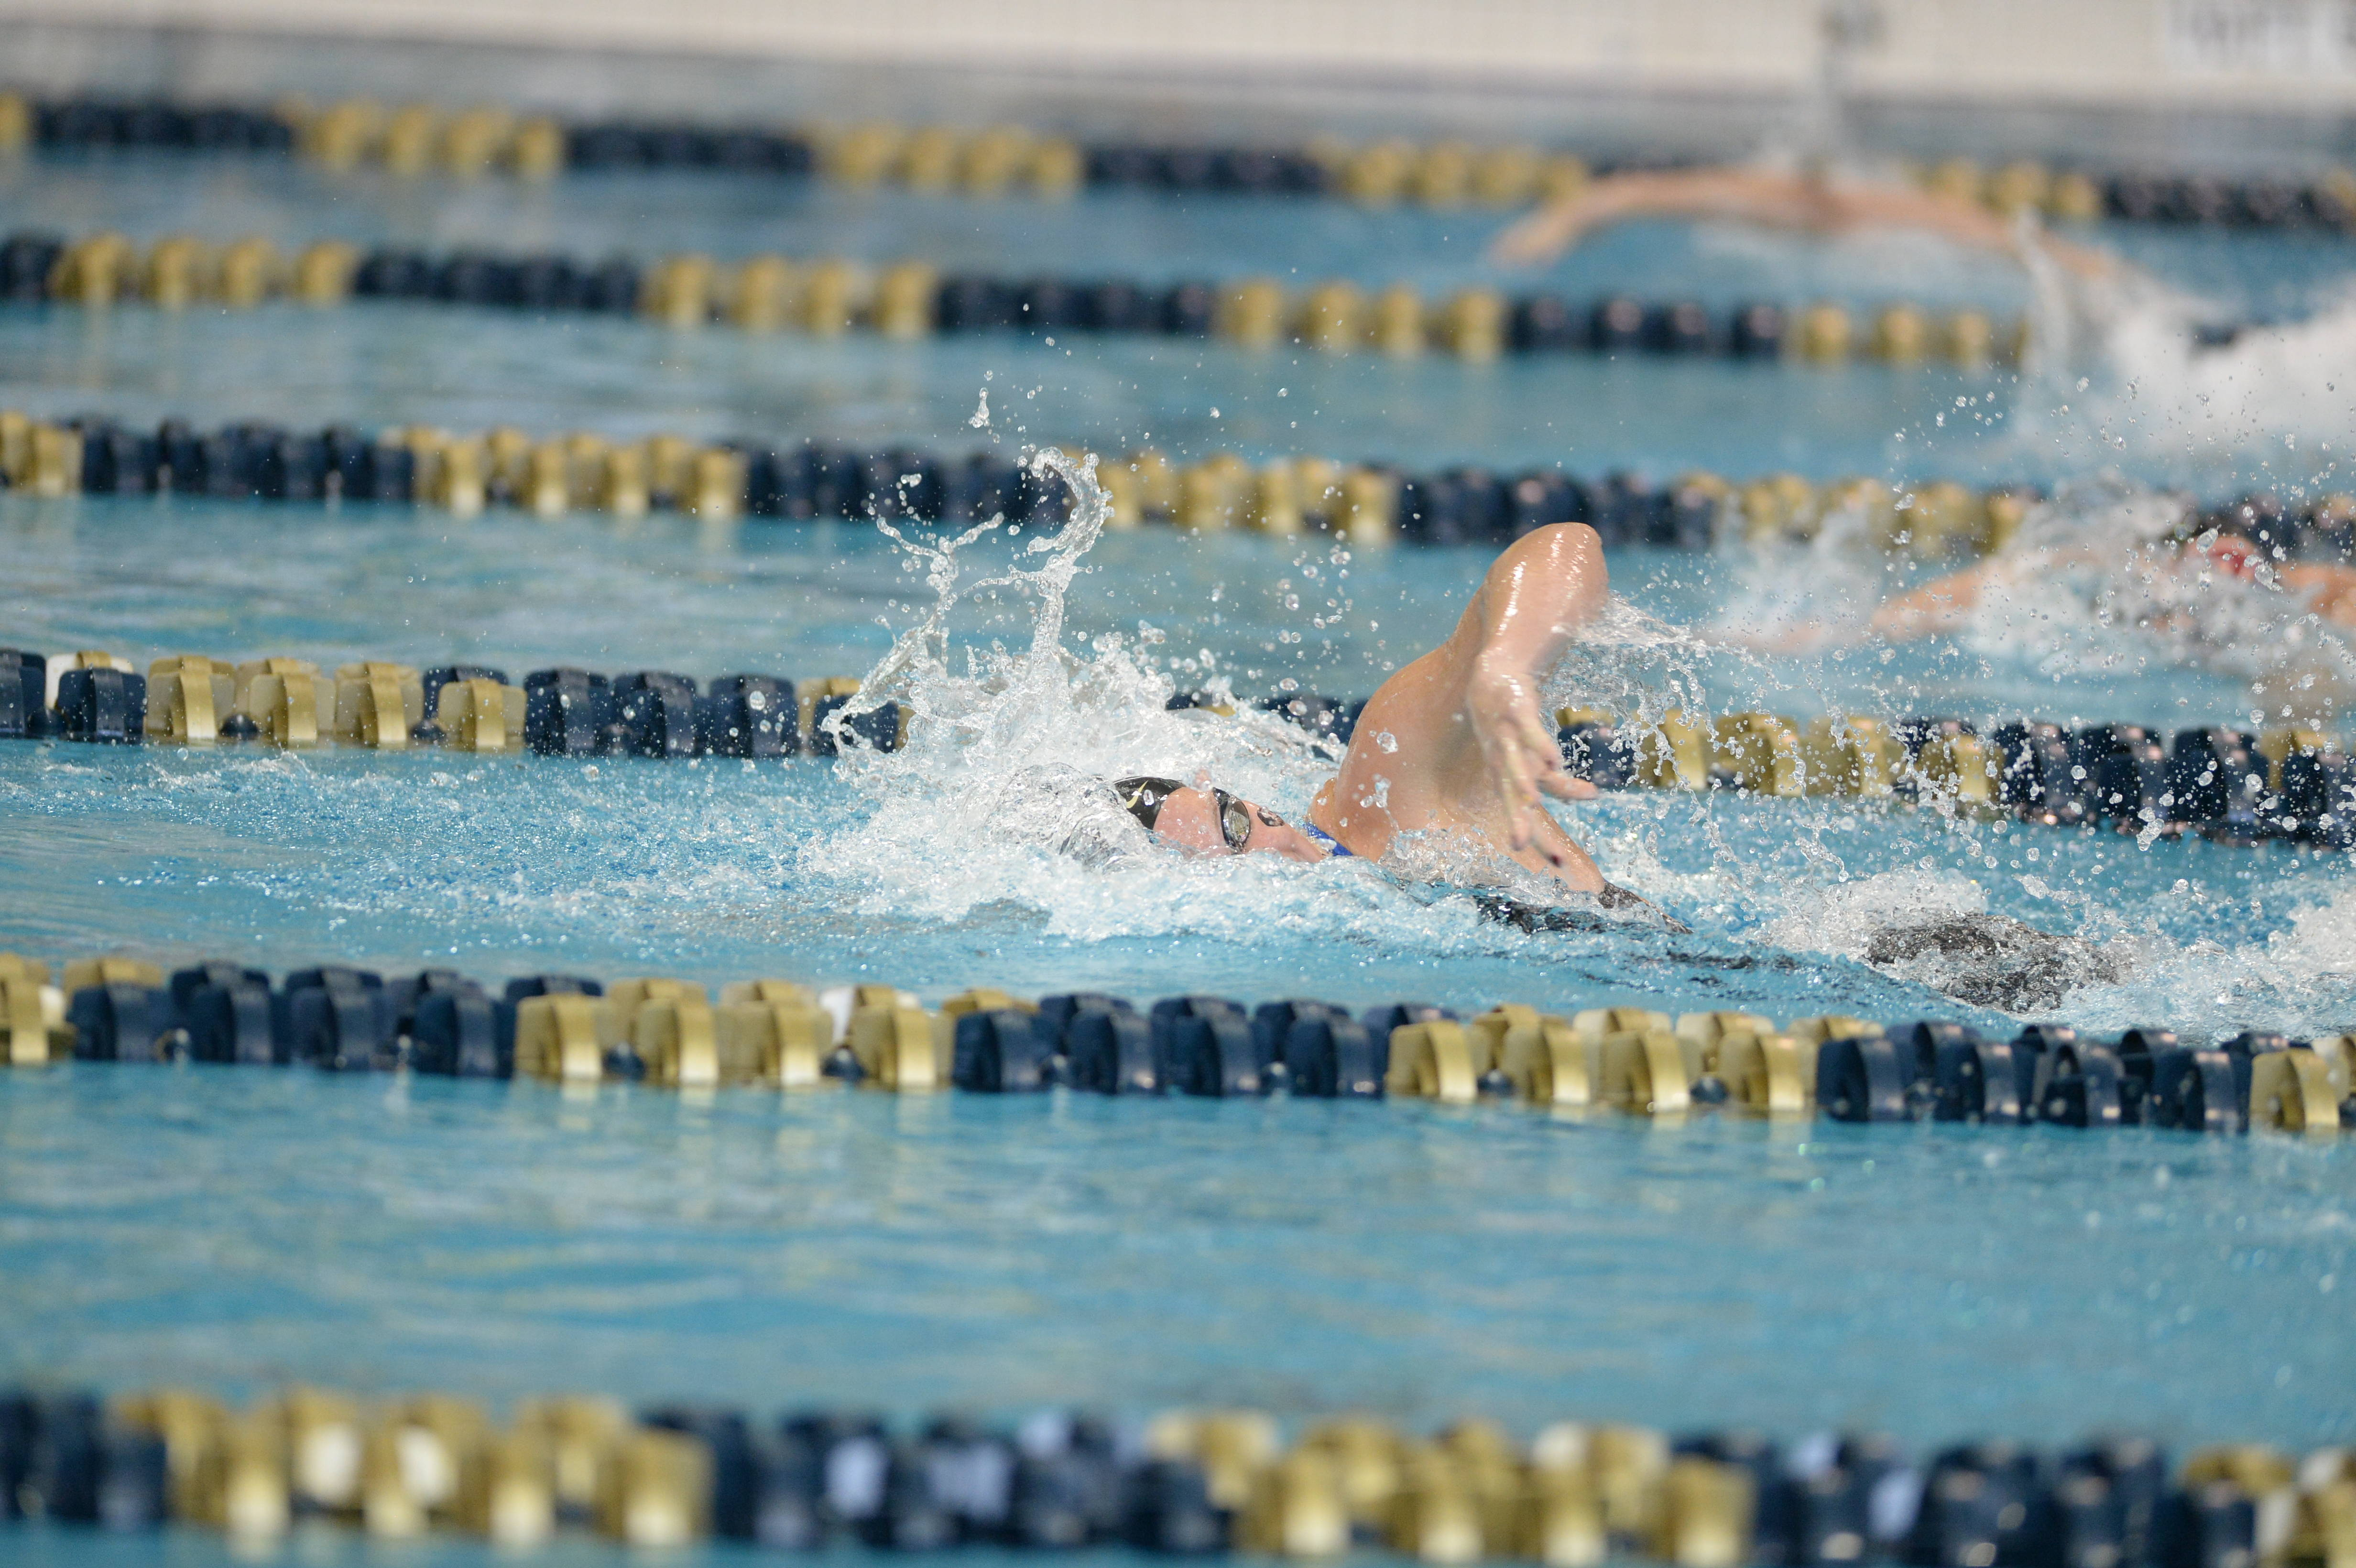 Kaitlyn Dressel builds a lead in the 200 free - Mitch White